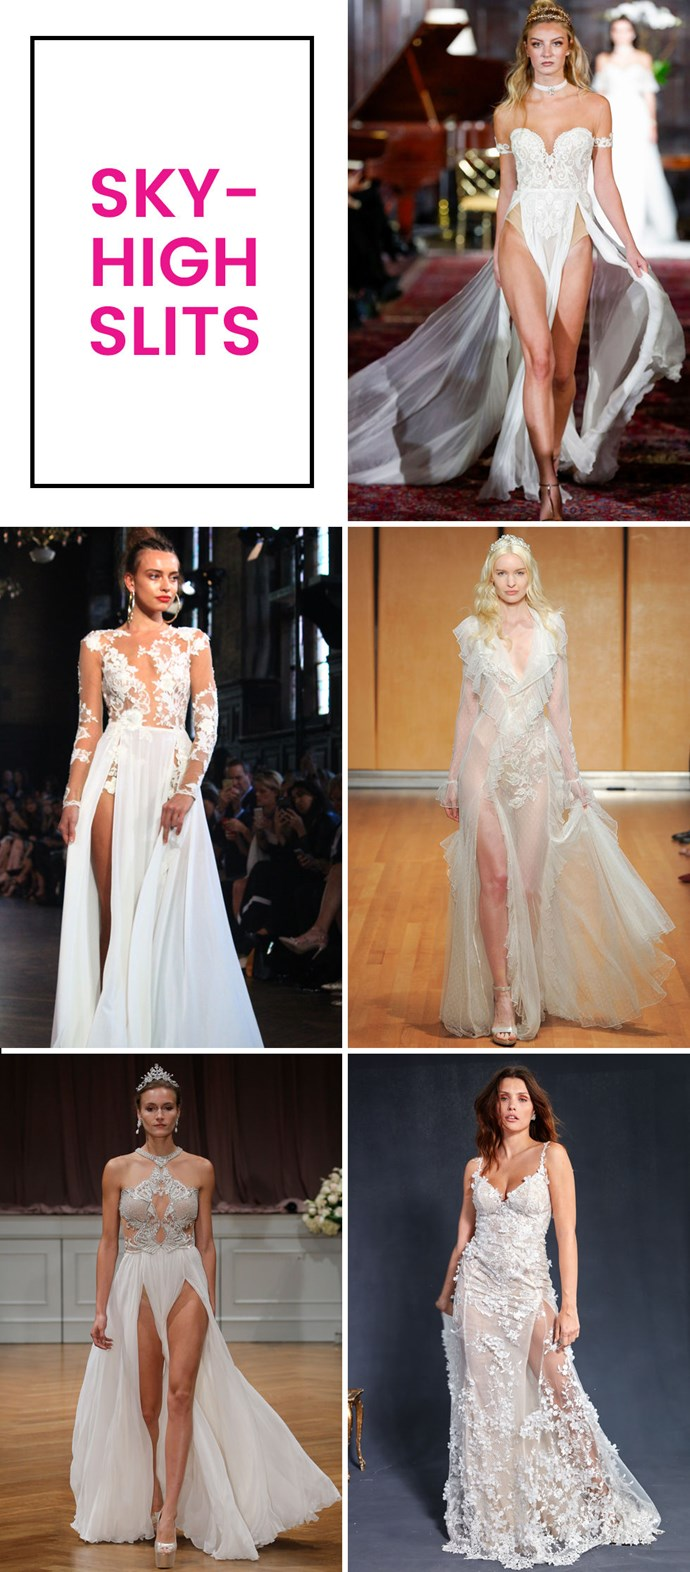 "**11. Slits that go all the way up there.**  As seen at Julie Vino, Inbal Dror, Galia Lahav, Alon Livné, and Berta. The slits were getting thigh high before, but they're waist-high at this point and going up on either side, leaving a panel to float through the gap in between. You only get married ""once,"" you know?"